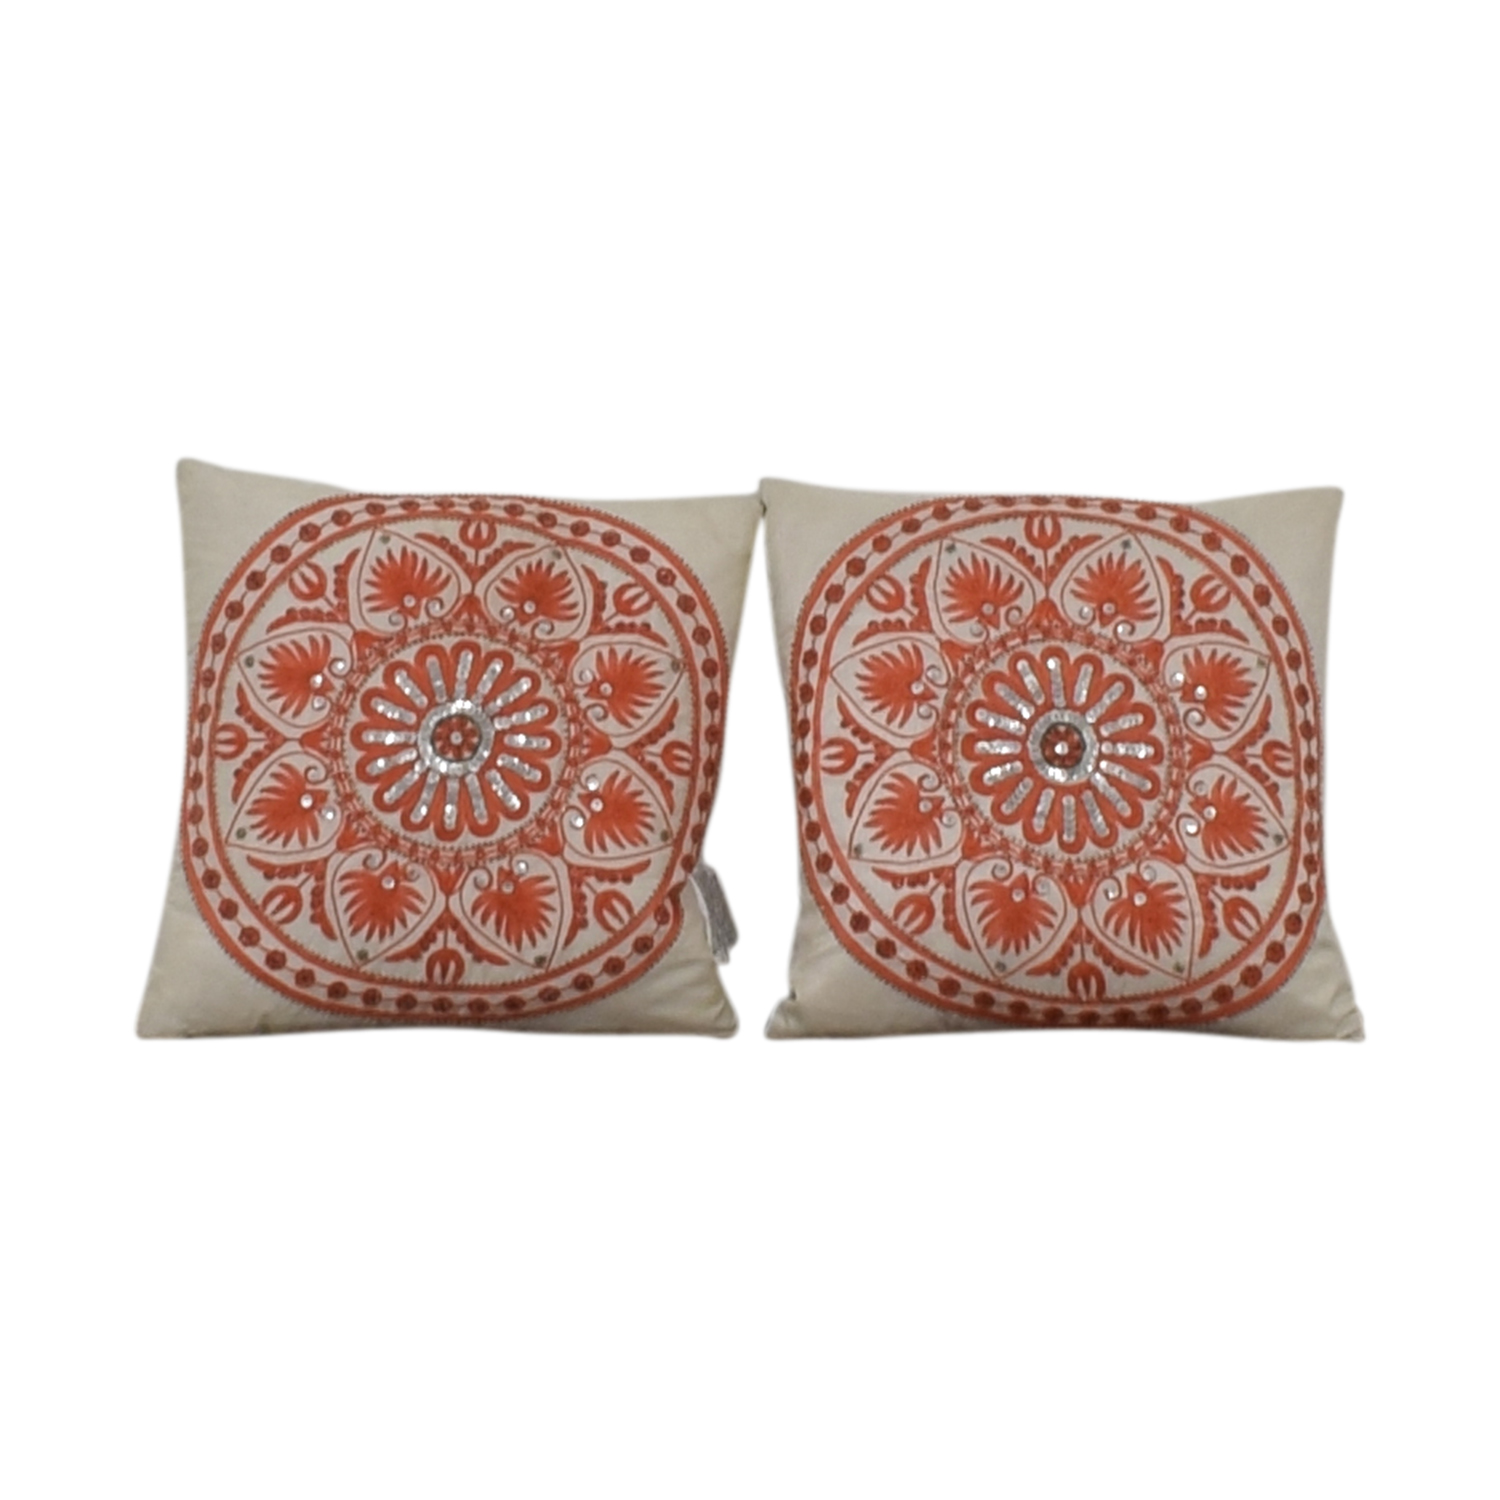 Macy's Macy's Orange Accent Pillows pink